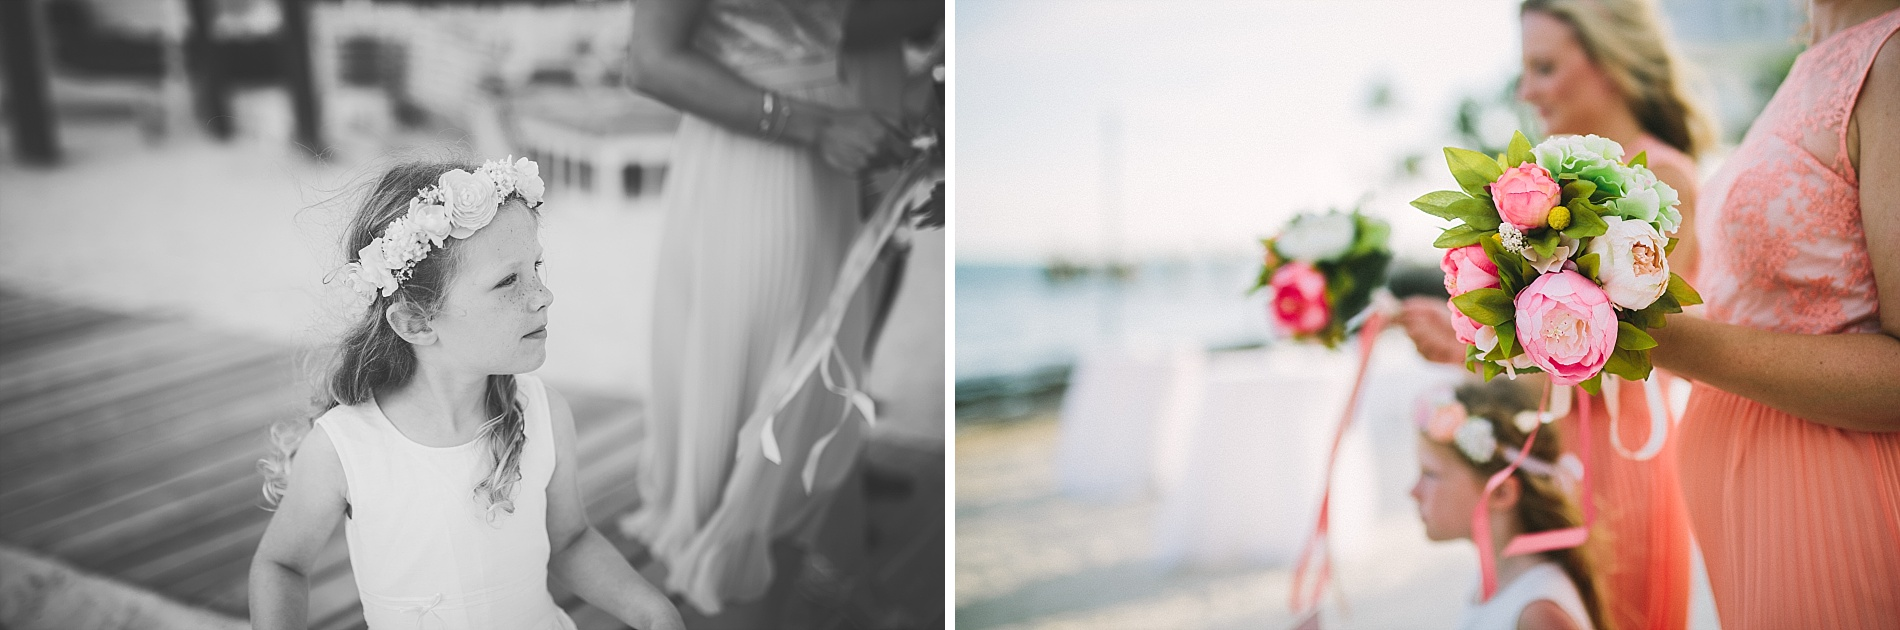 key west wedding photography 040